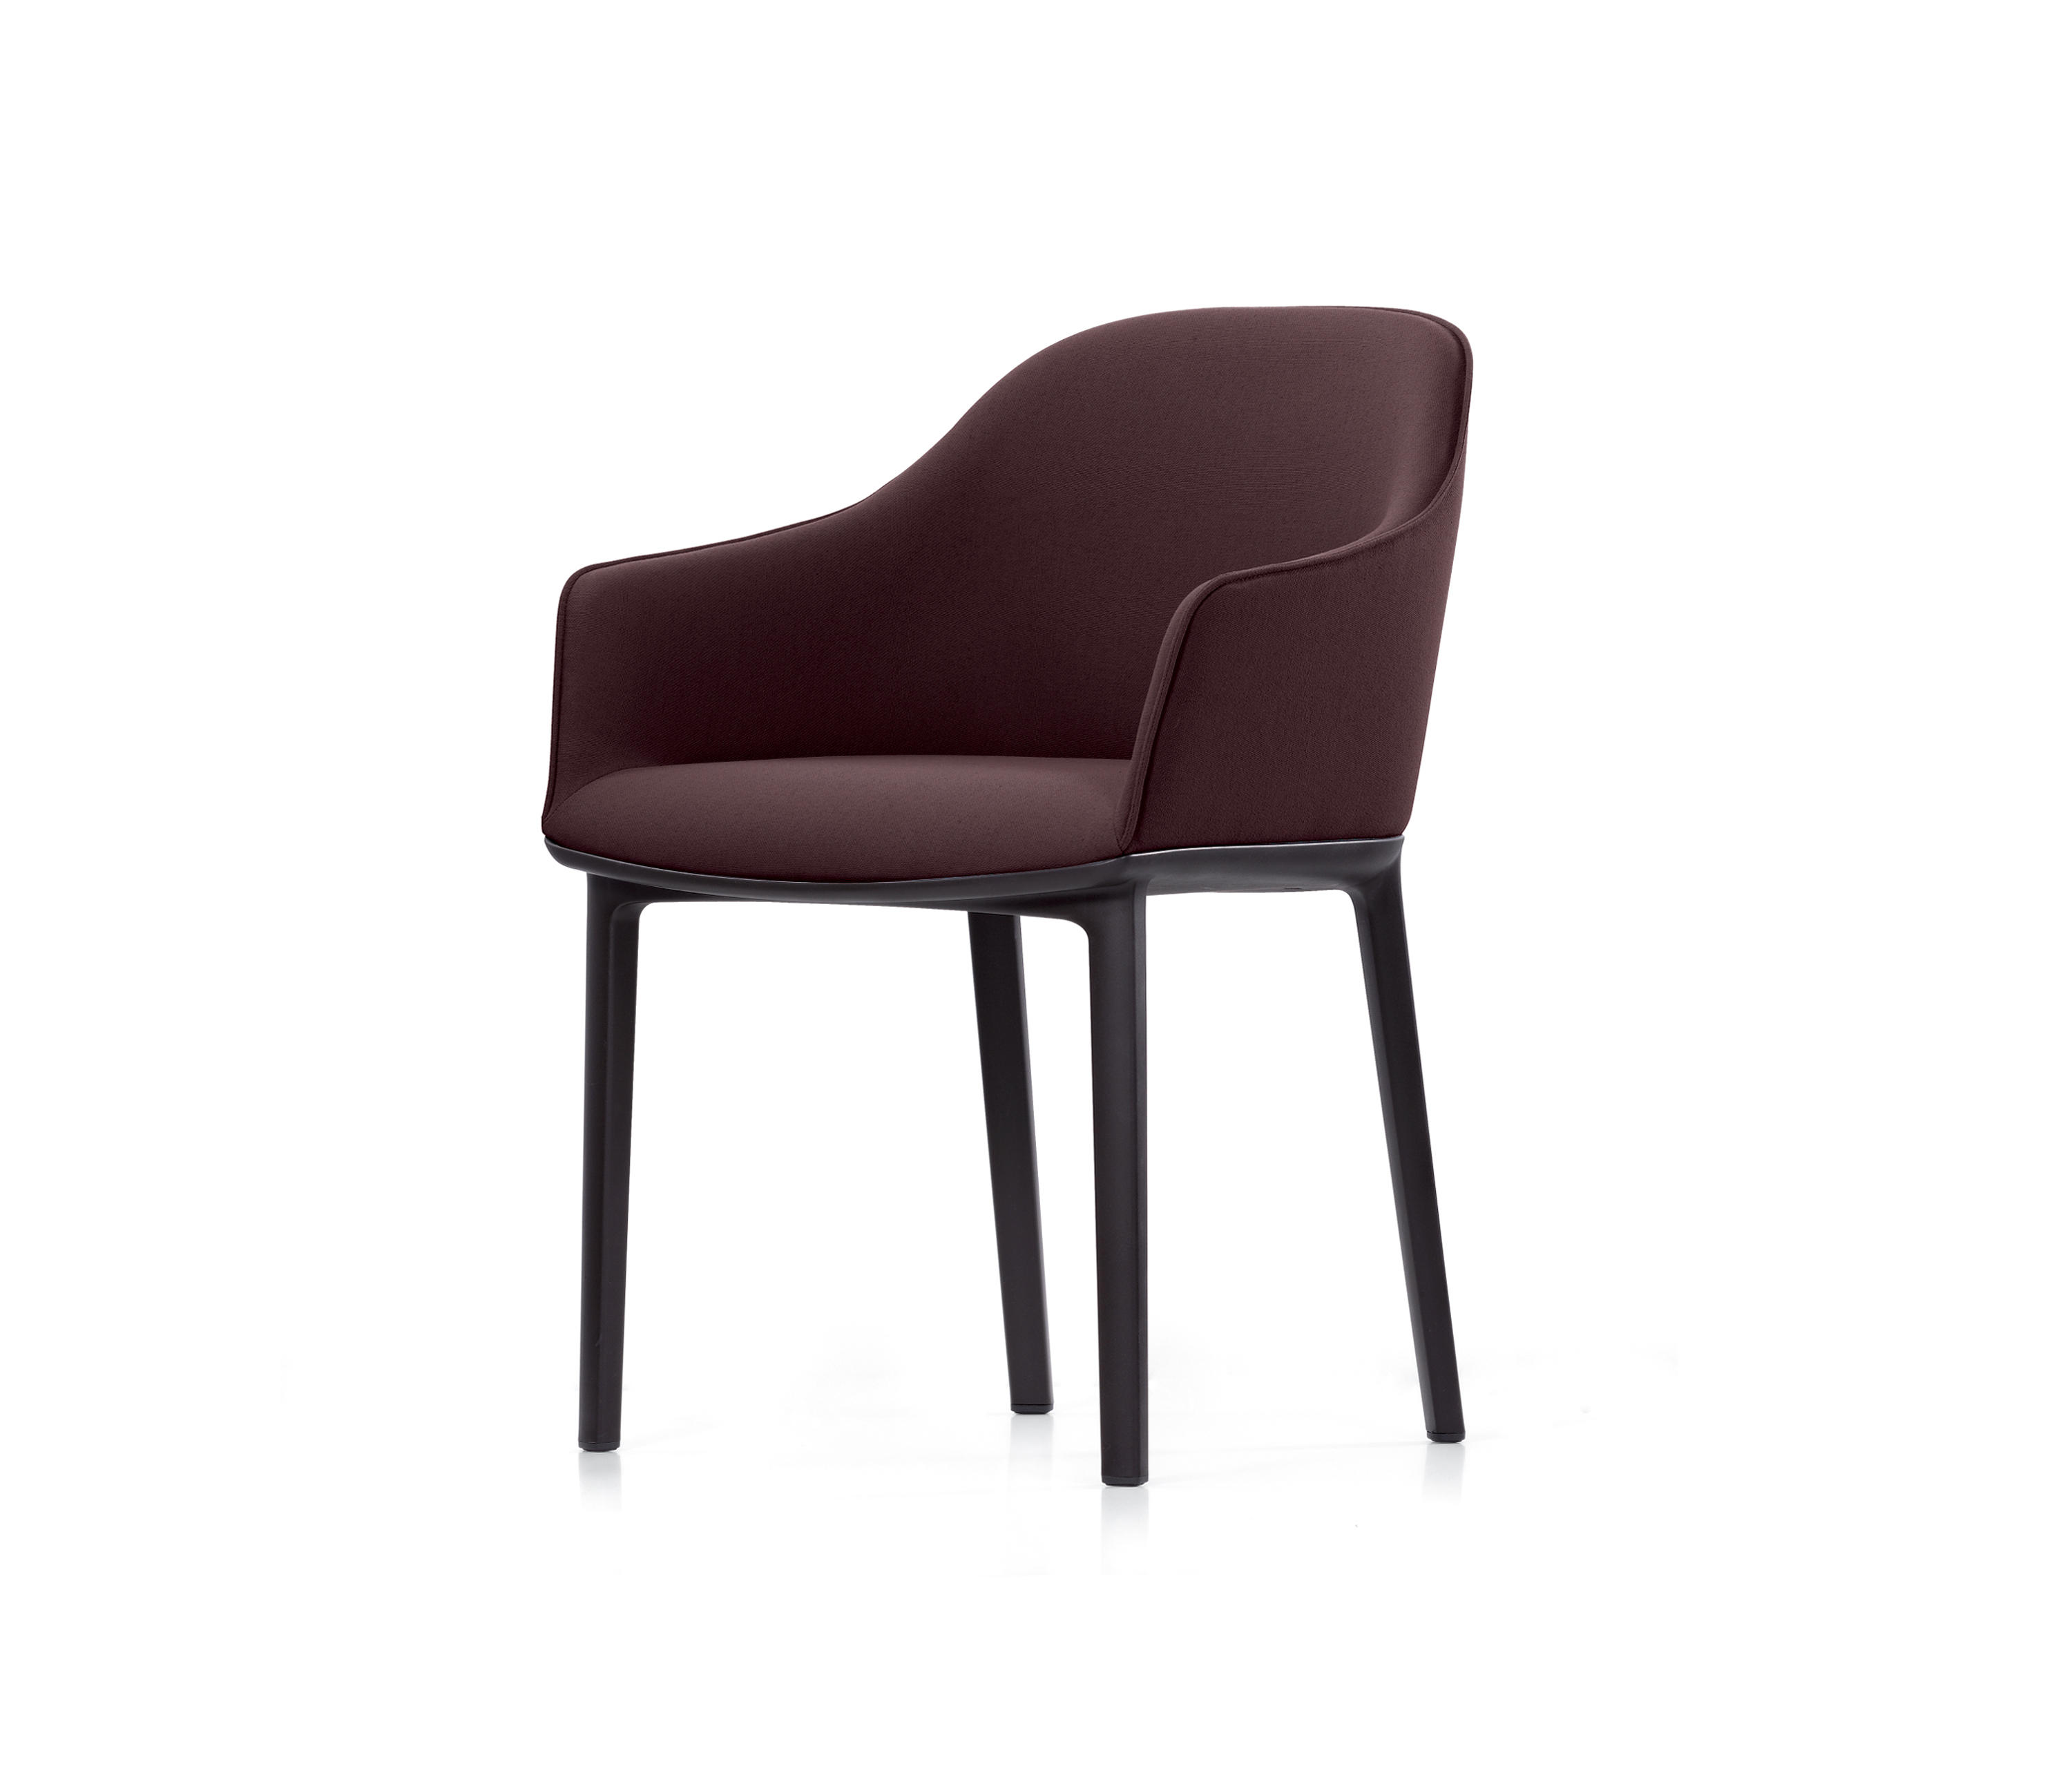 softshell chair visitors chairs side chairs from vitra architonic. Black Bedroom Furniture Sets. Home Design Ideas